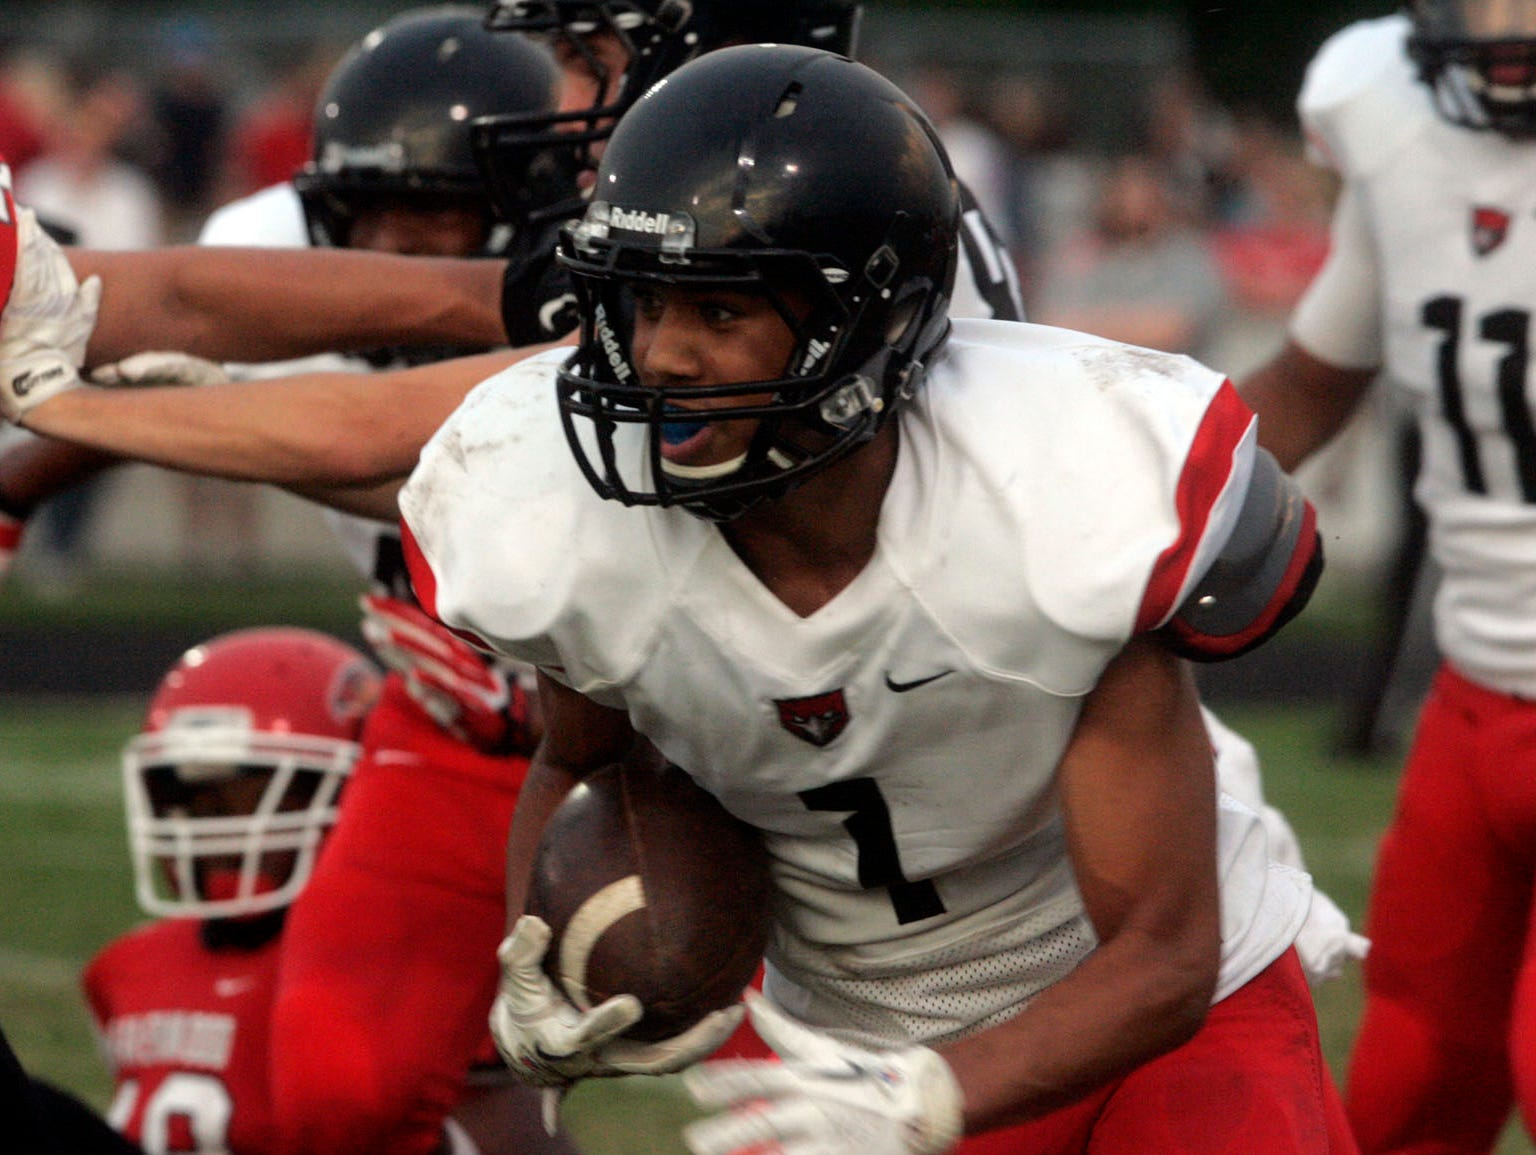 Stewarts Creek's Cynterius Lyons returns a kickoff in the first half at Ravenwood Friday, August 23, 2013.